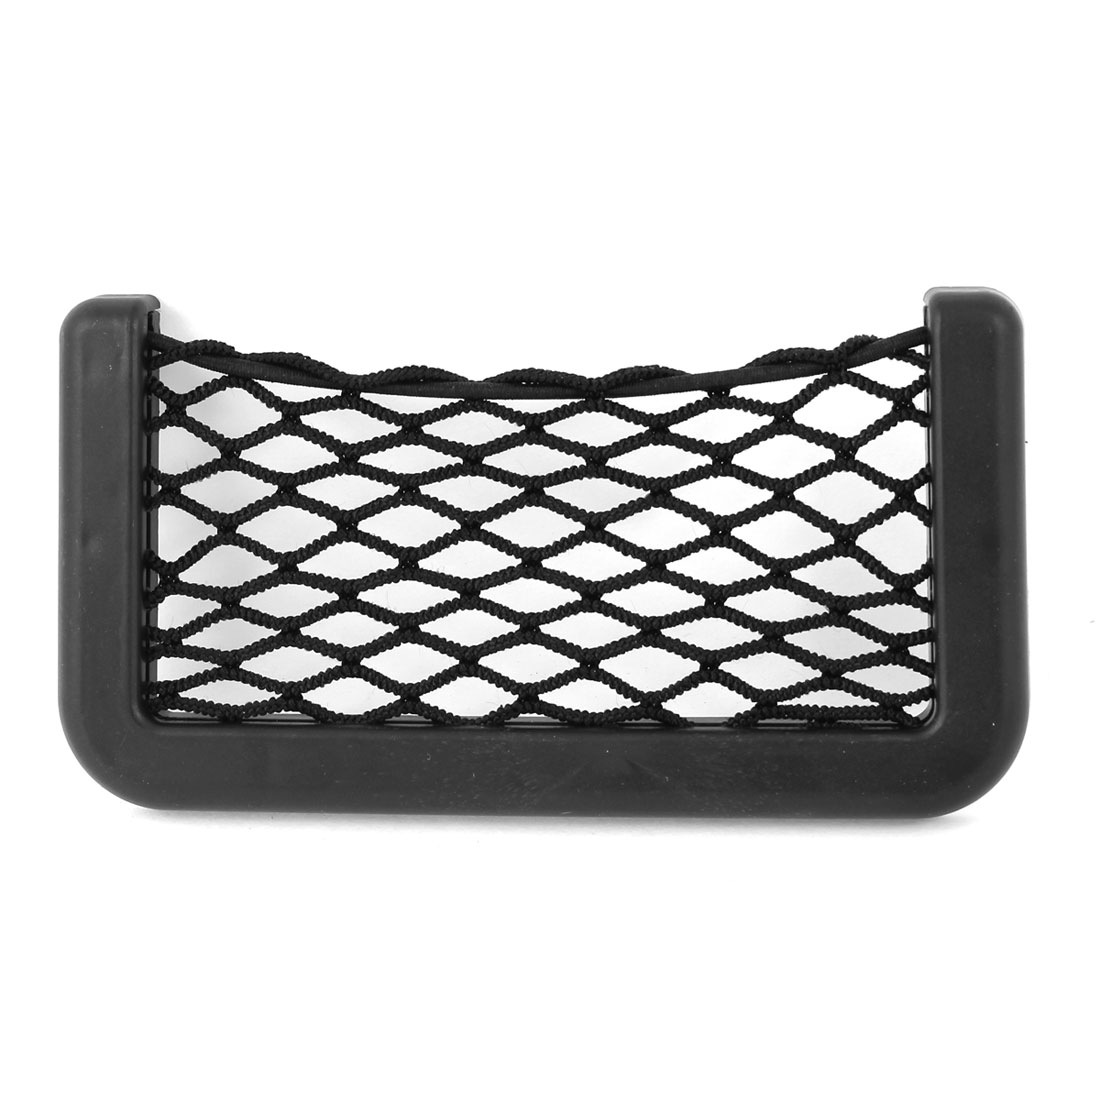 Black Plastic Frame Elastic Nylon Net Design Phone Storage Pocket Pouch Card String Mesh Bag Holder for Car